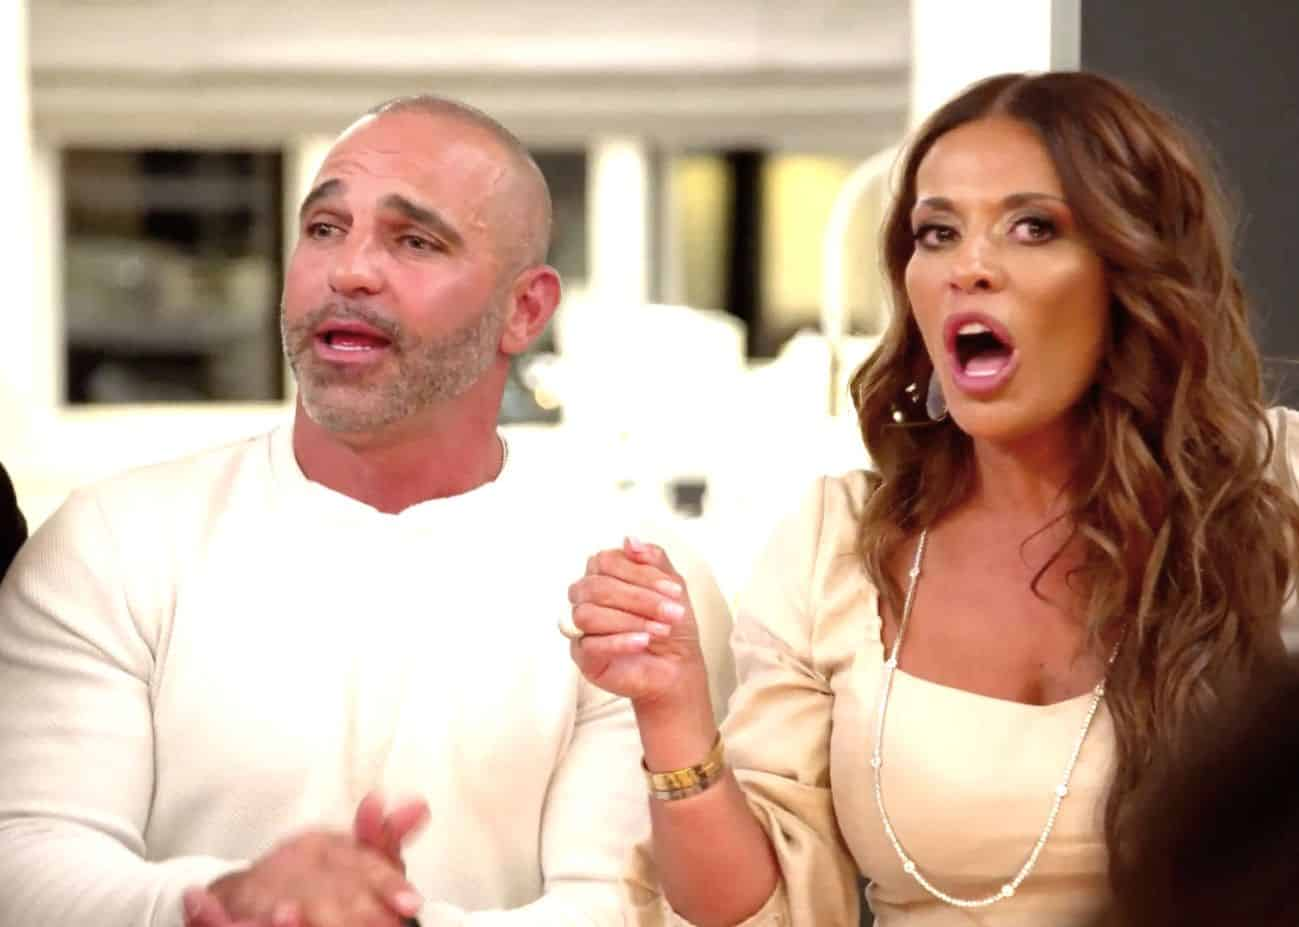 """RHONJ Recap: Joe Gorga Calls Dolores a """"Broken Woman"""" as She Storms Out of Michelle's Party After Everyone Attacks Her Relationship With David"""